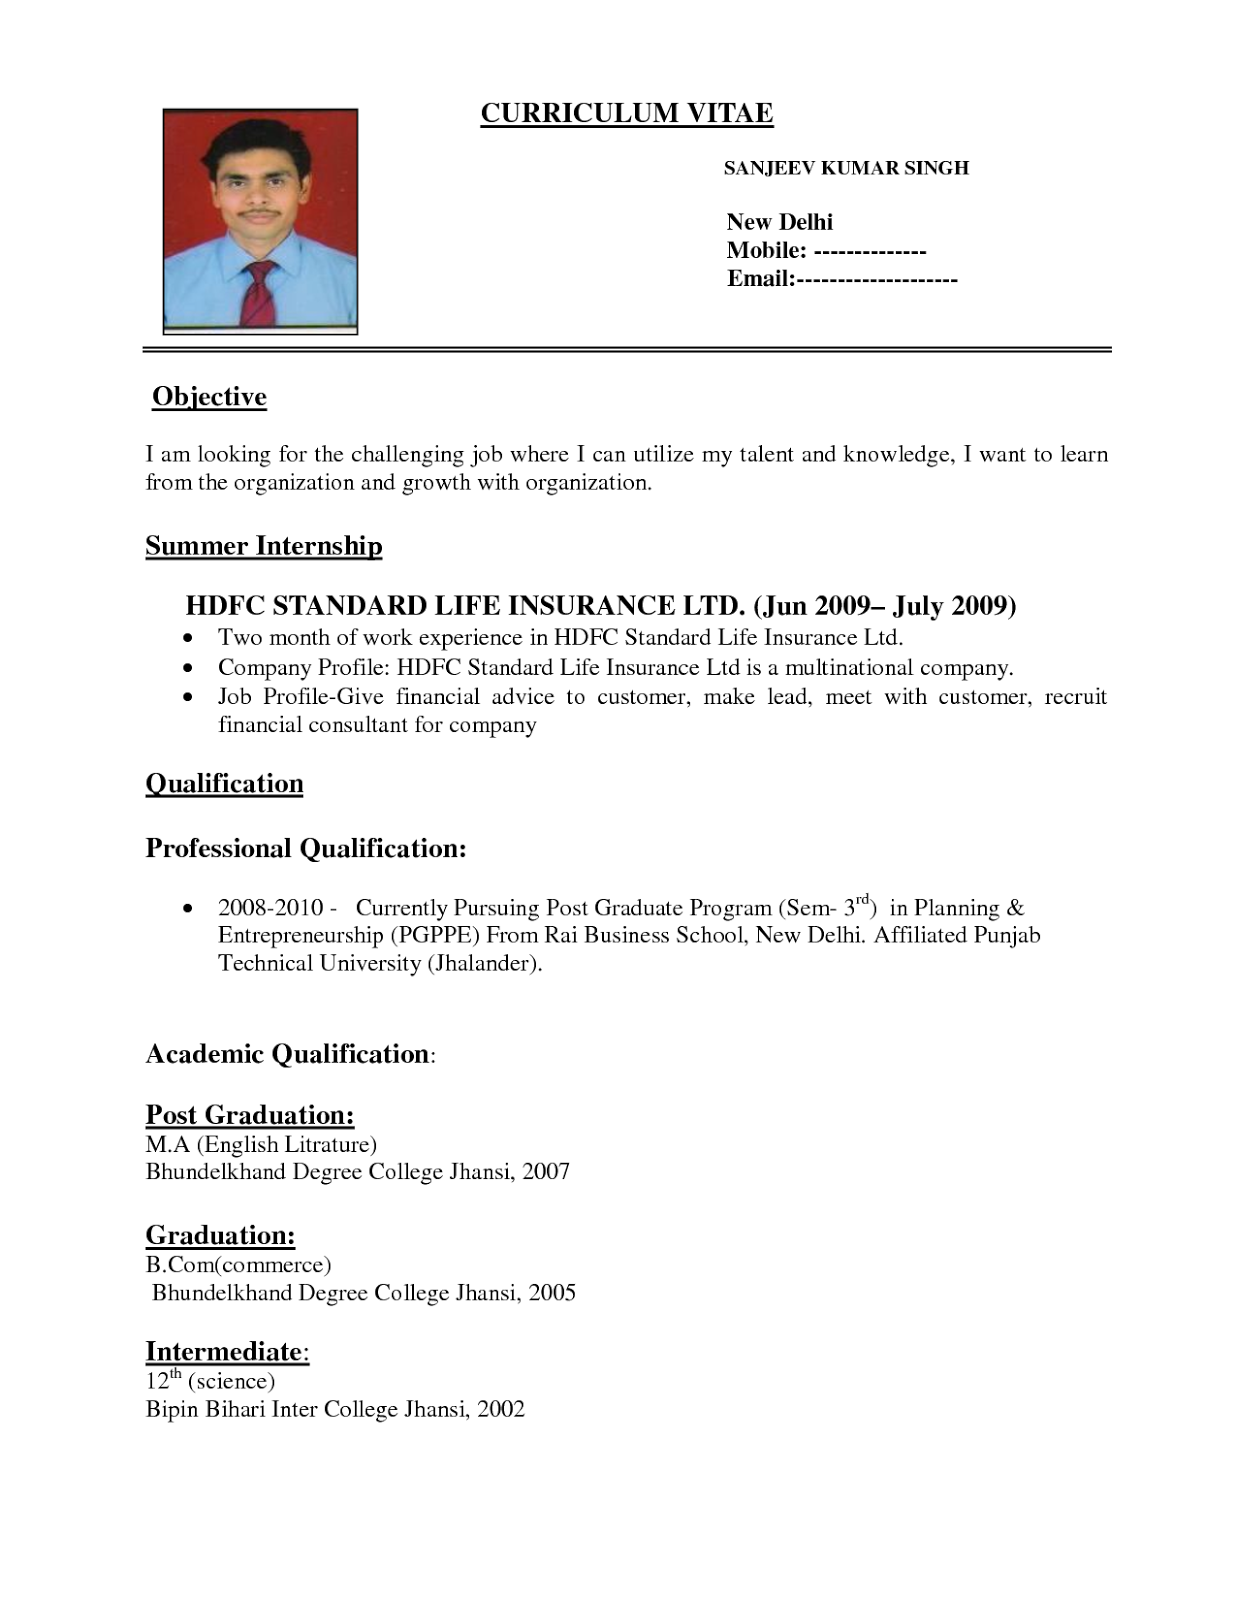 Sample Of Resume Format For Job Application Job Resume Format First Job Resume Download Resume